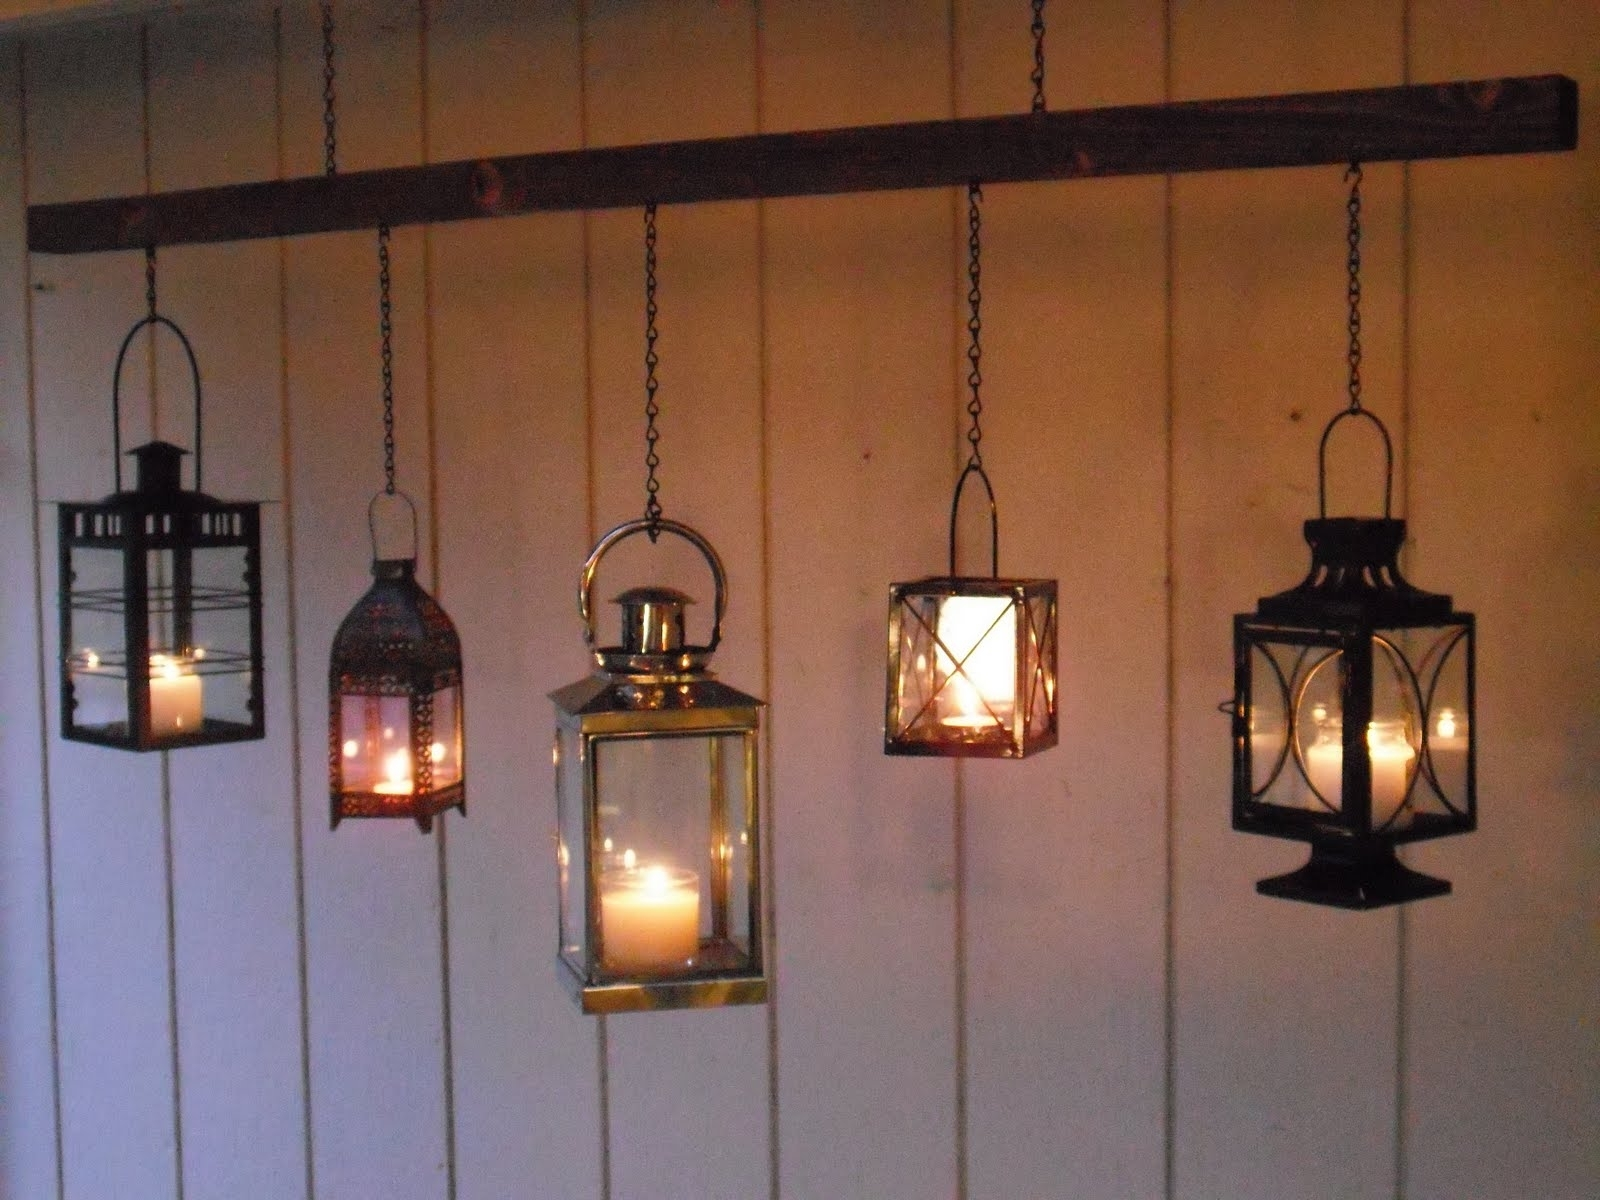 Outdoor Hanging Candle Lanterns At Wholesale Regarding Best And Newest Wedding Decoration Hanging Candle Lanterns – Matt And Jentry Home Design (View 13 of 20)